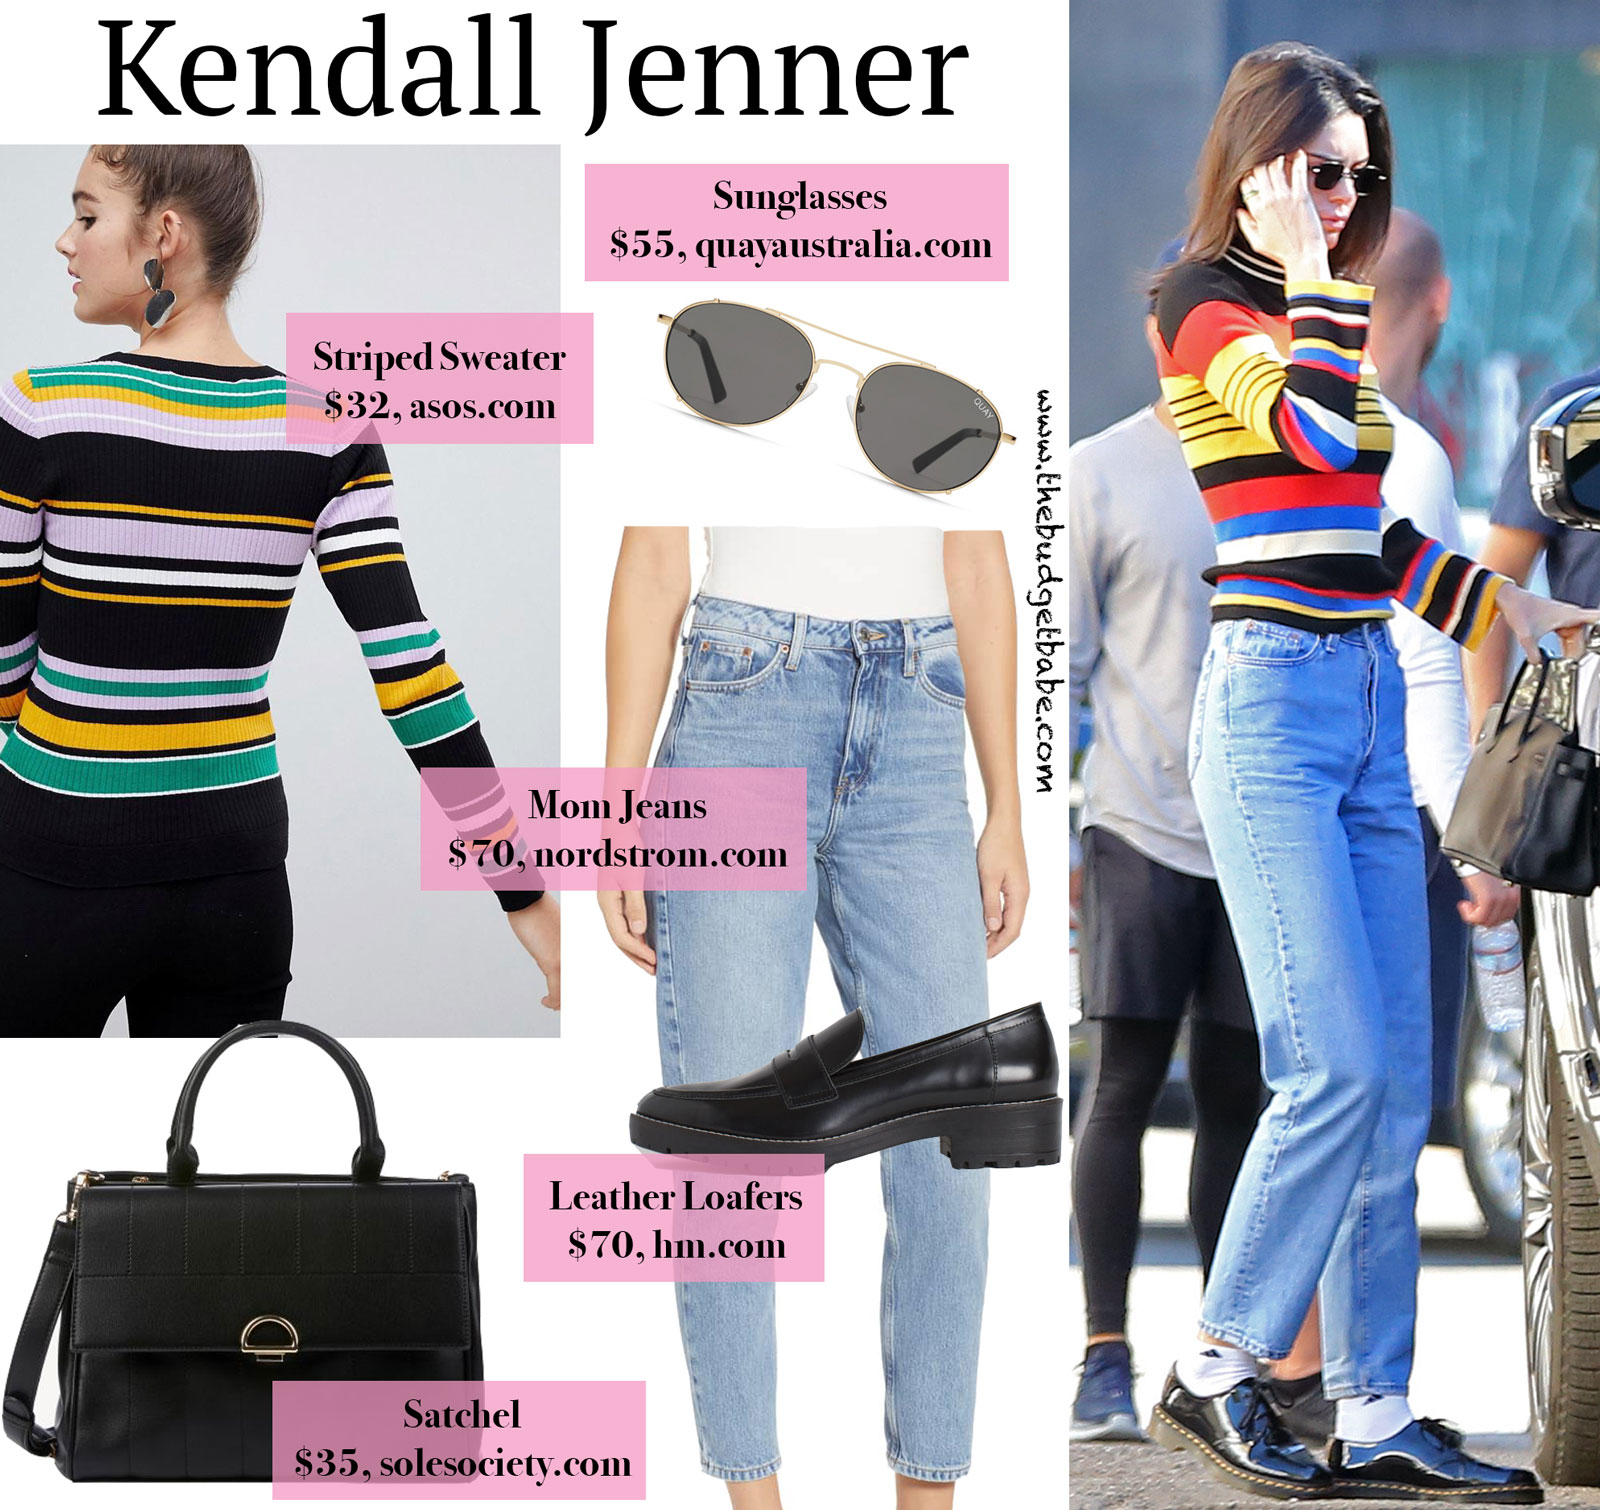 Kendall Jenner Striped Sweater and Loafers Look for Less